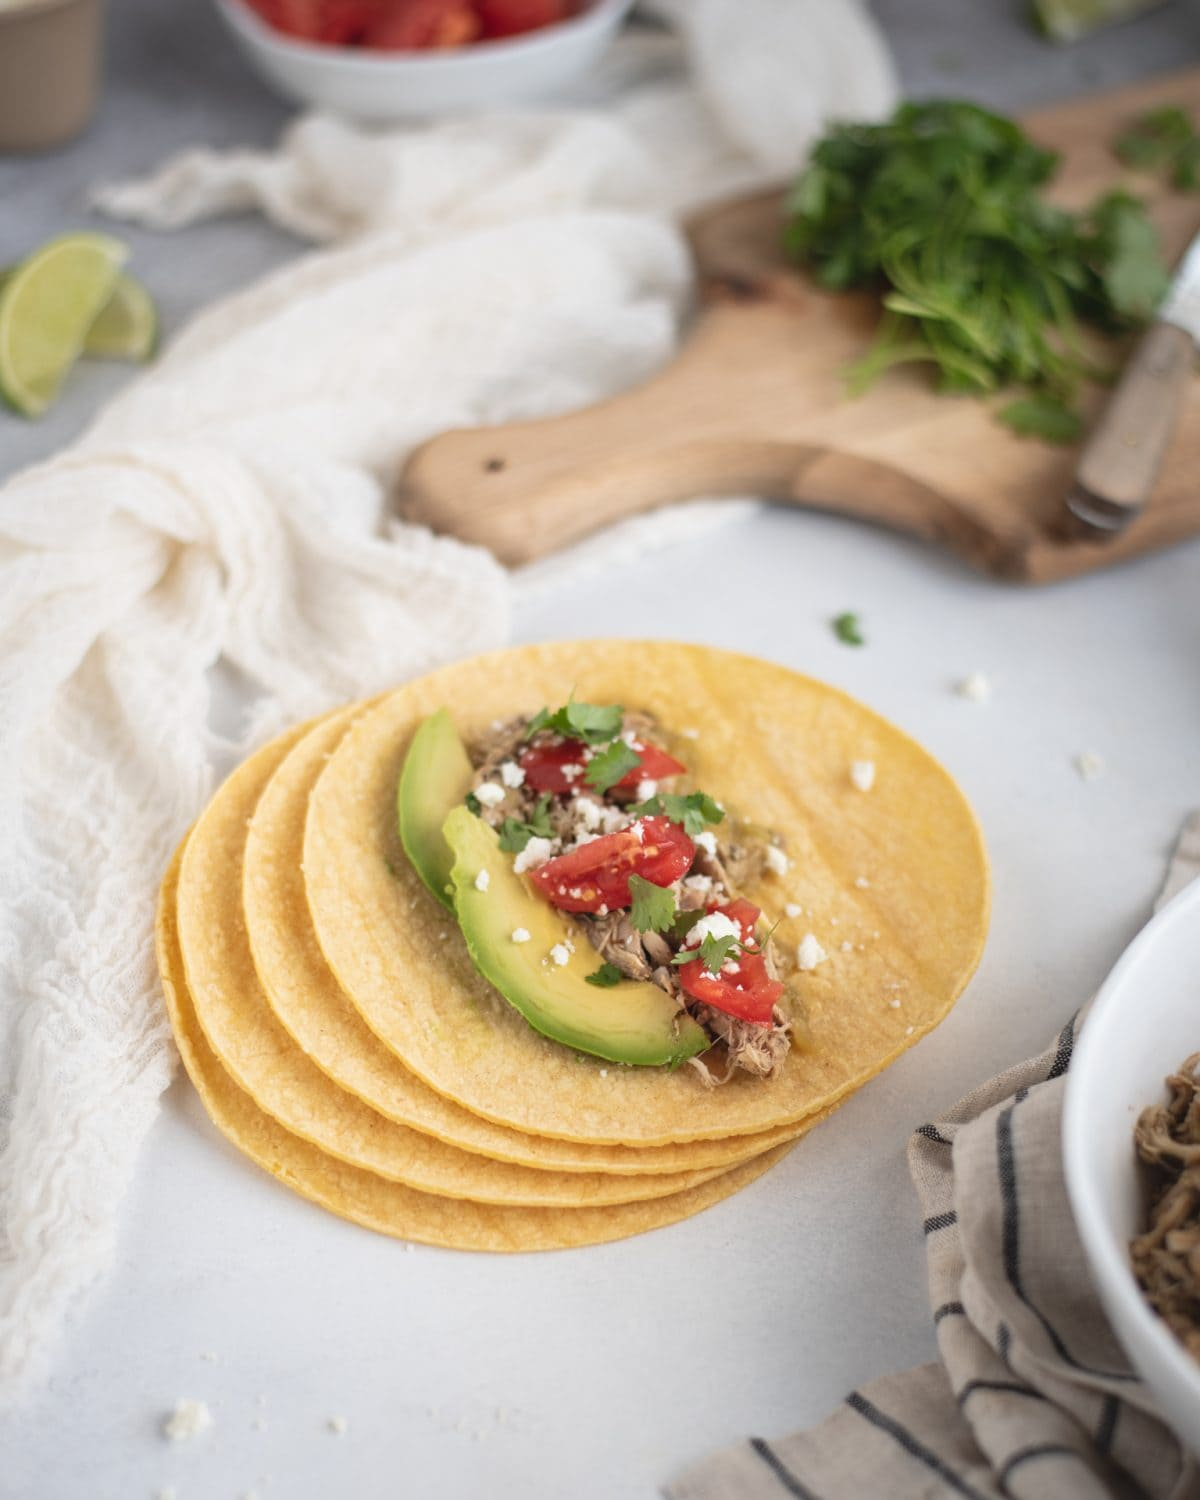 Slow Cooker Cilantro Lime Chicken Taco picture on corn tortilla